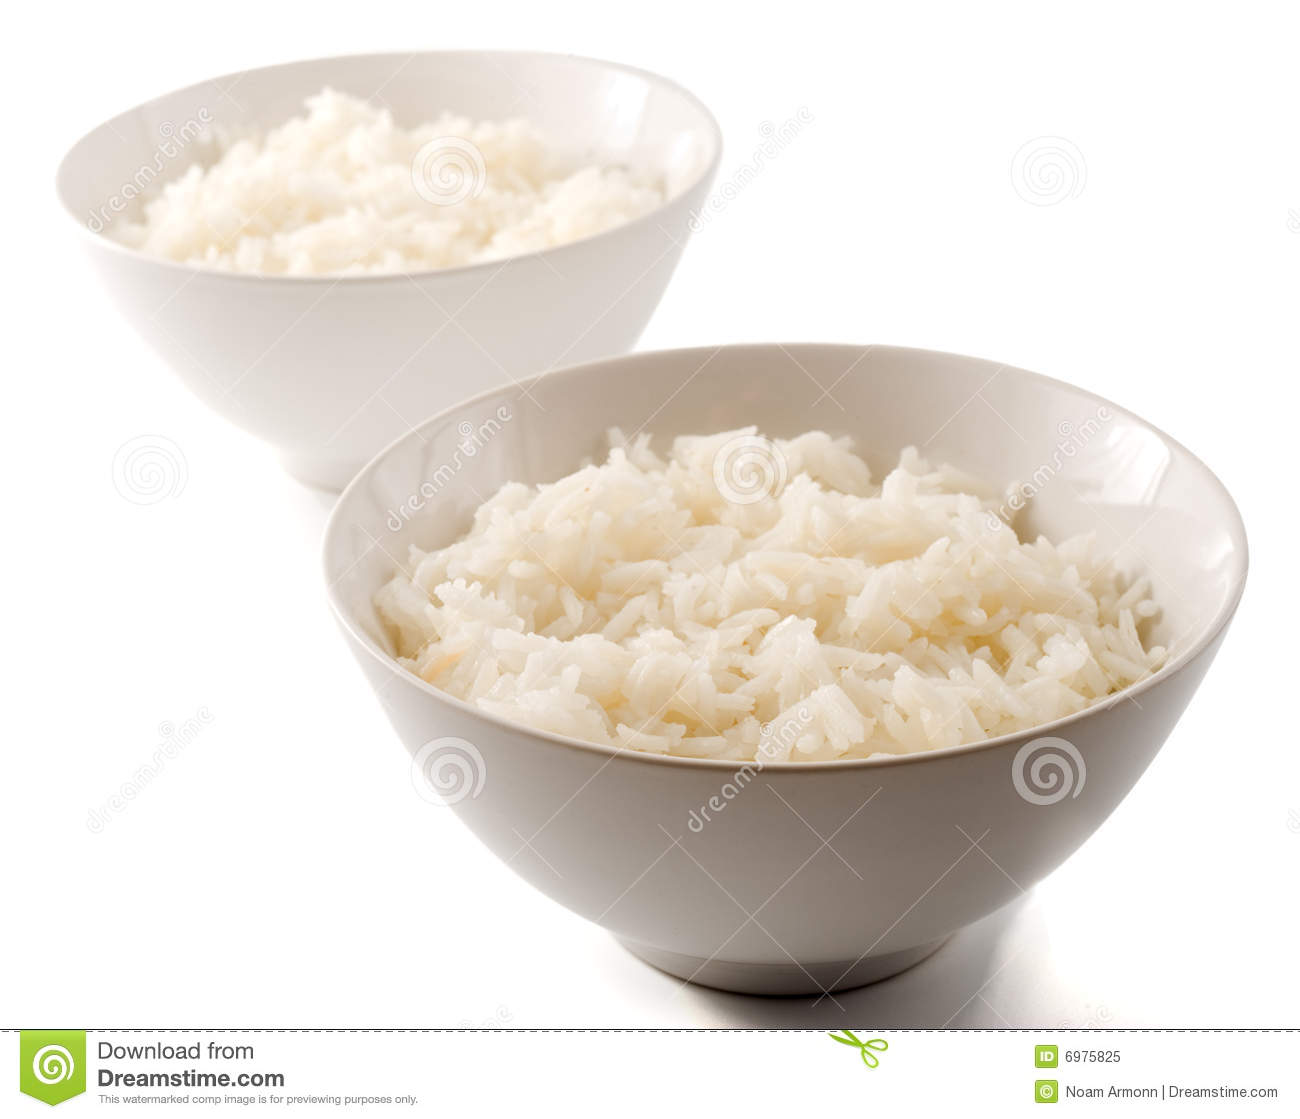 how to avoid eating raw rice